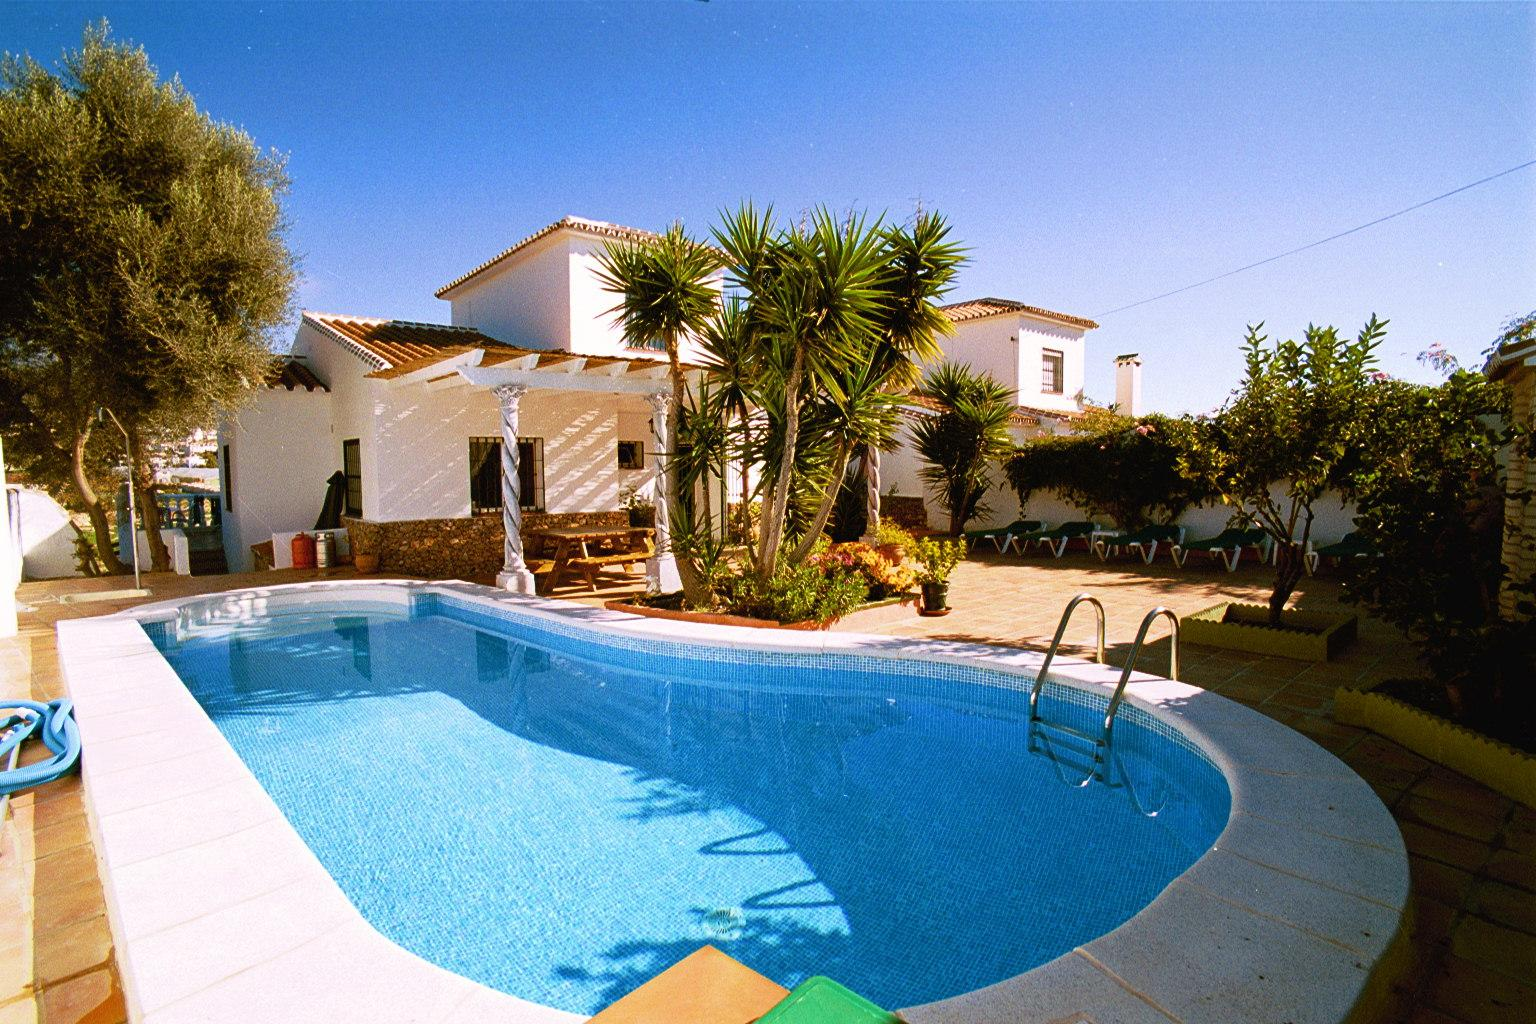 big houses with pools for sale homes for sale with pools under 250000 just in - Nice Big Houses With Pools